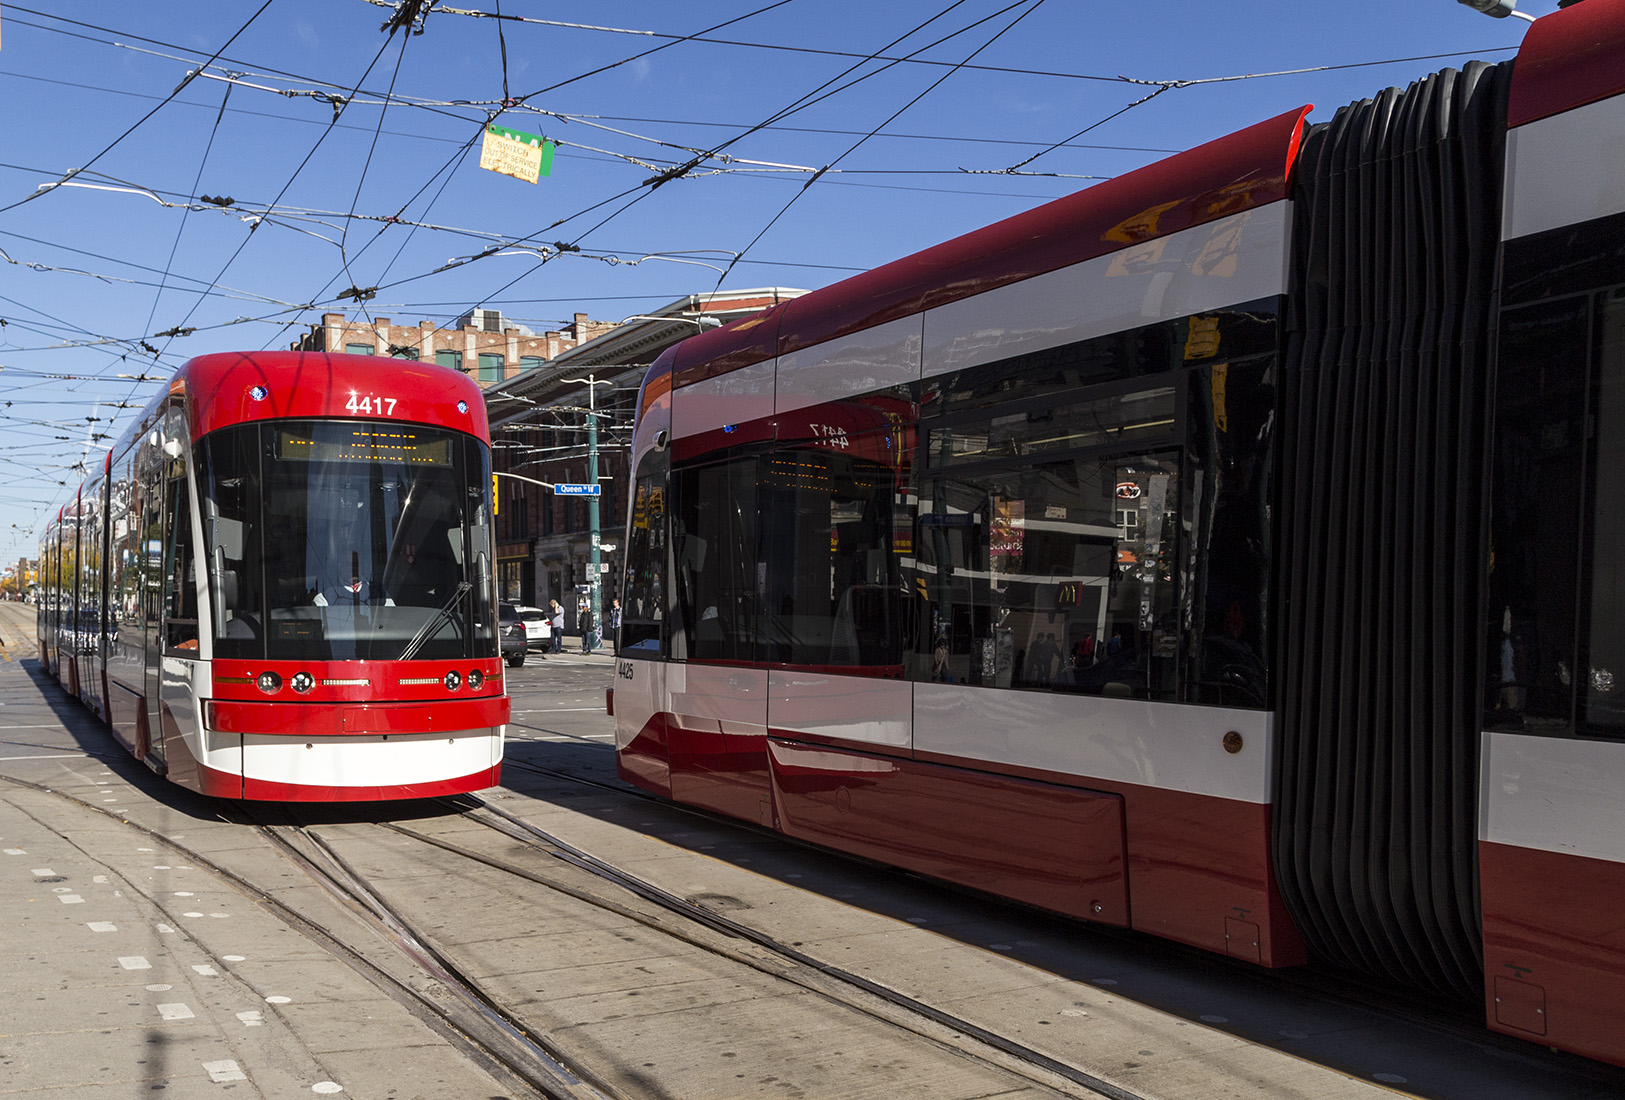 20161020a. 4417 vs. 4425. Two TTC 510 Spadina Flexity streetcars